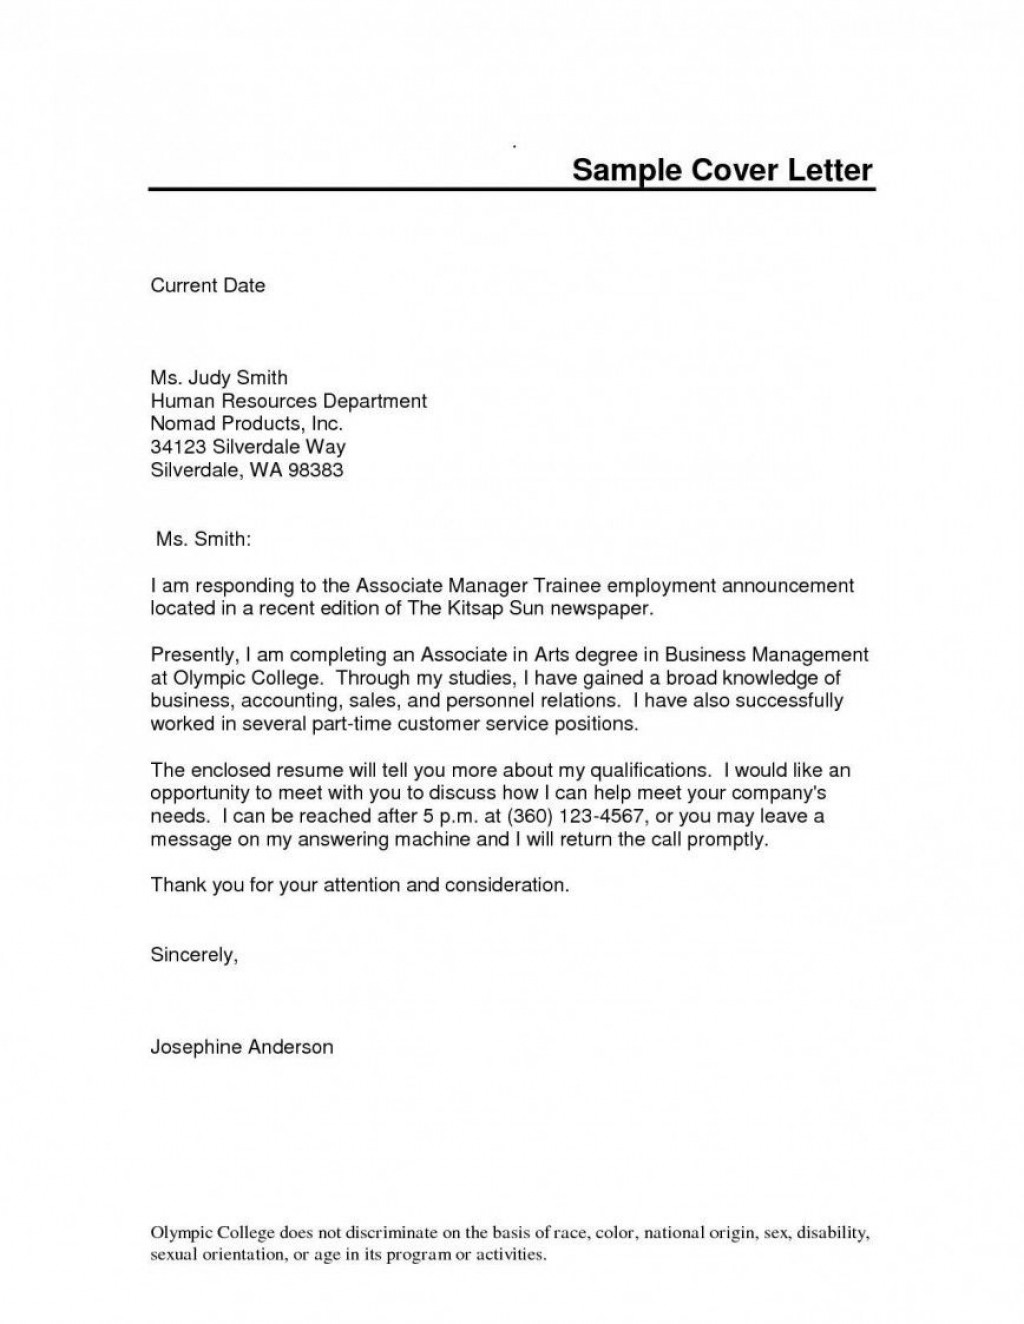 000 Amazing Cover Letter Template Microsoft Word Idea  2007 FaxLarge